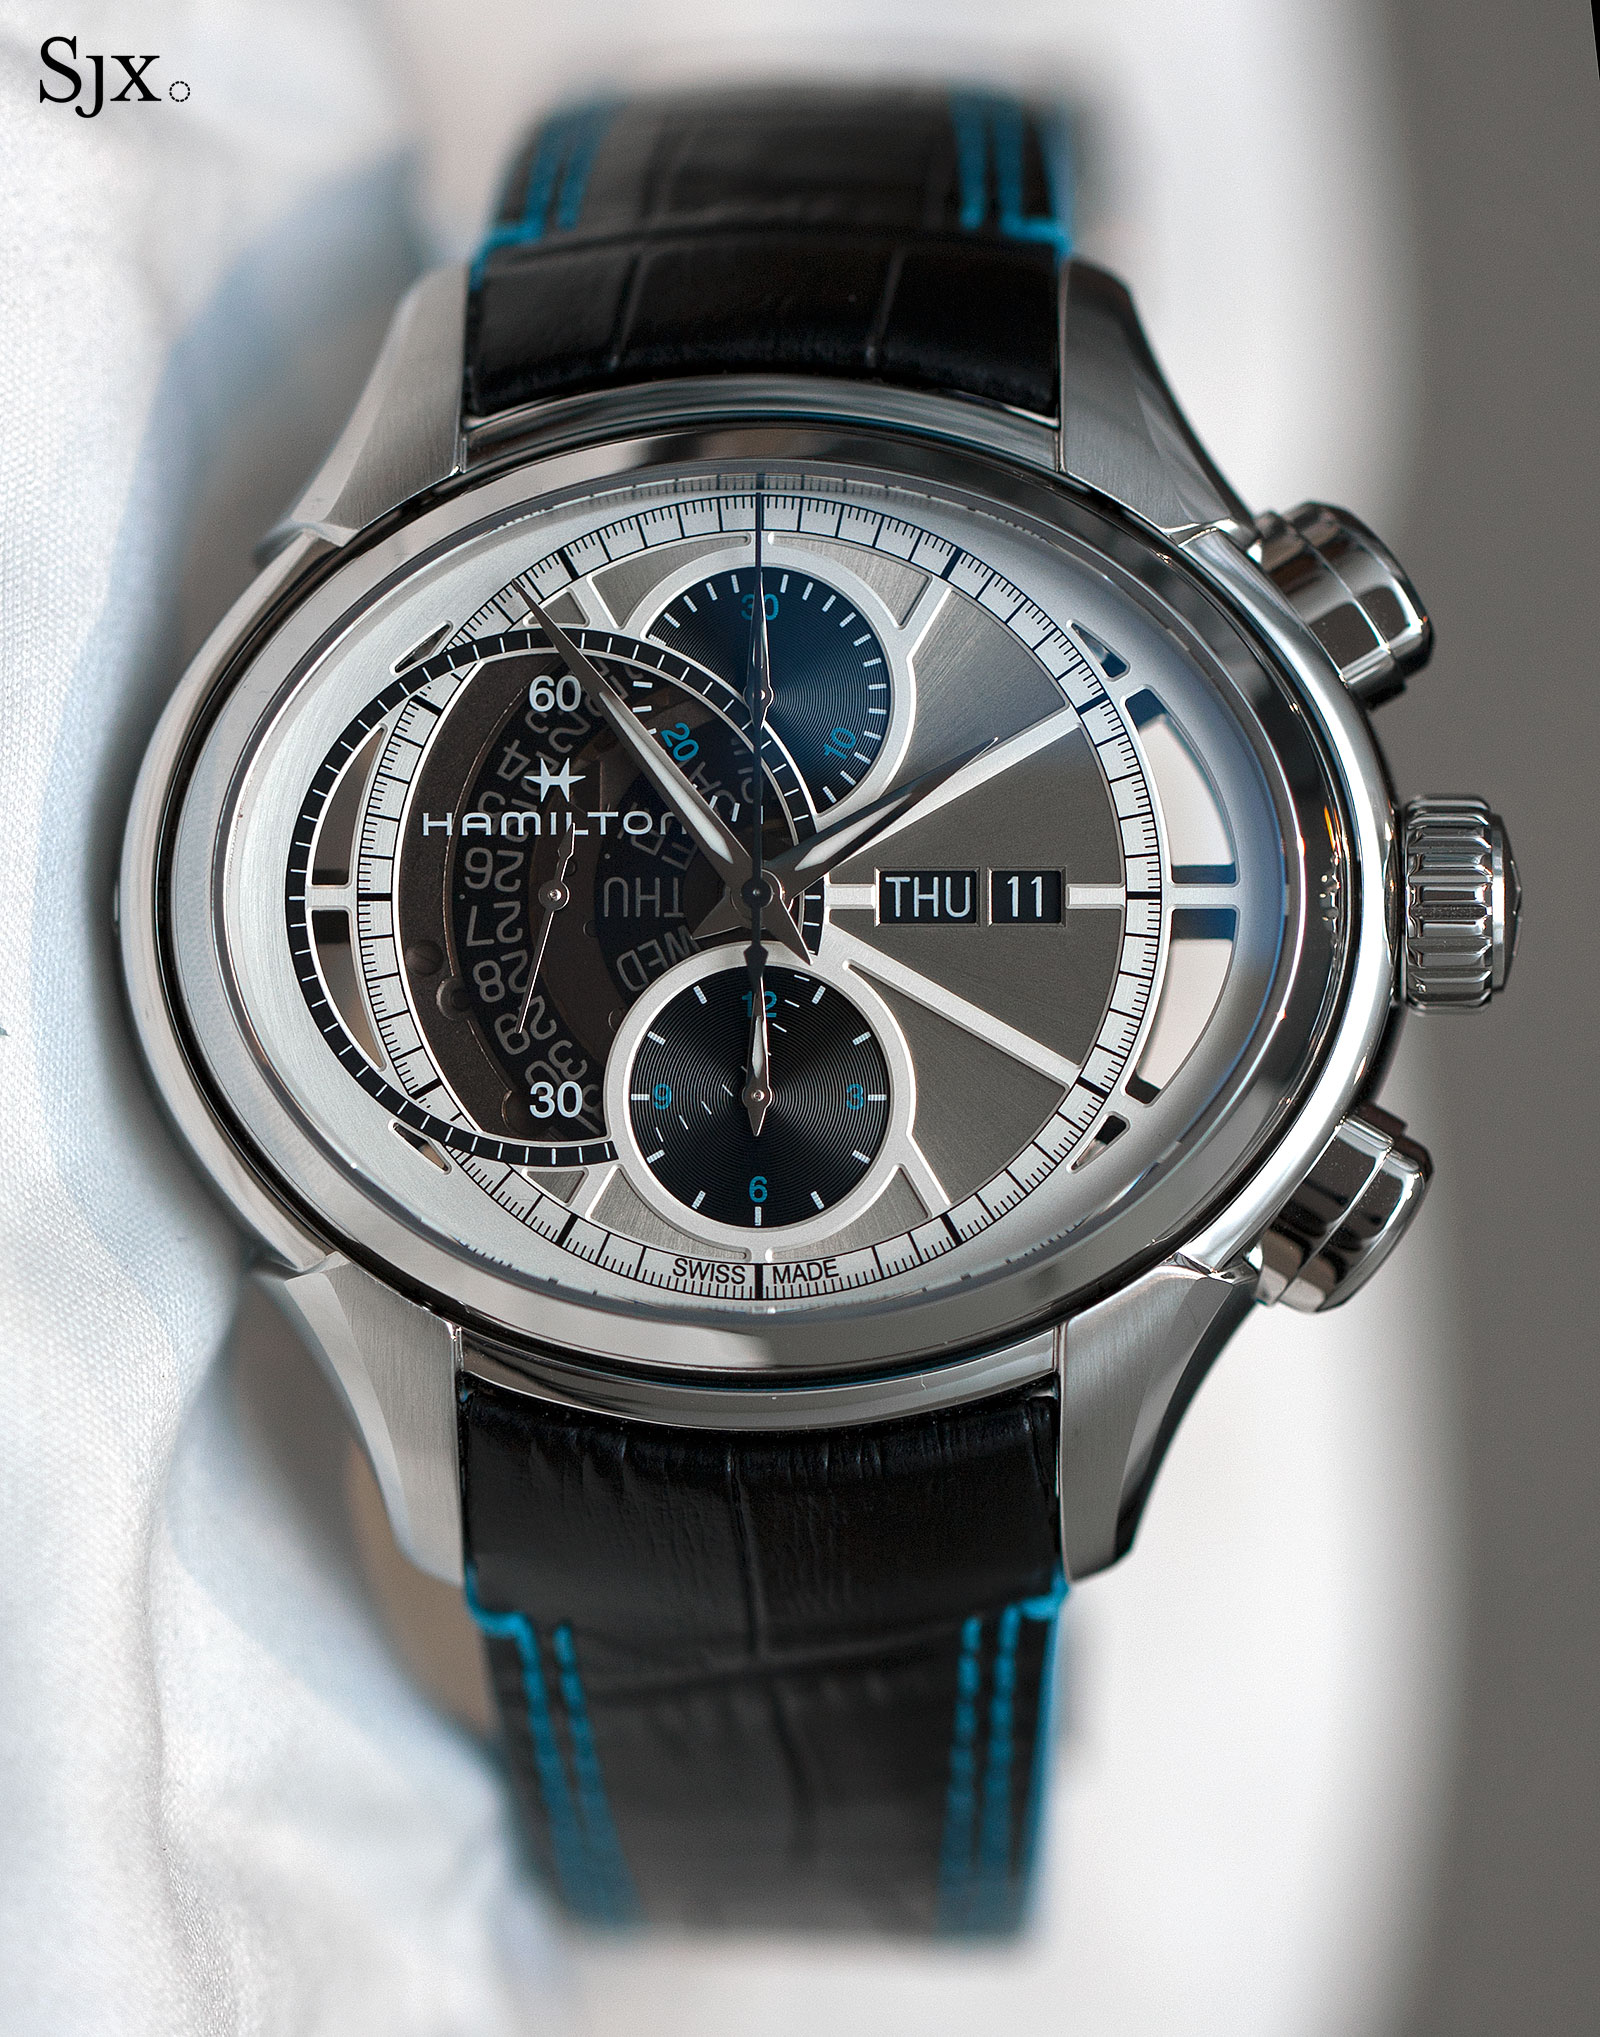 Presenting The New Hamilton Jazzmaster Face 2 Face II Double-Sided Chronograph Replica